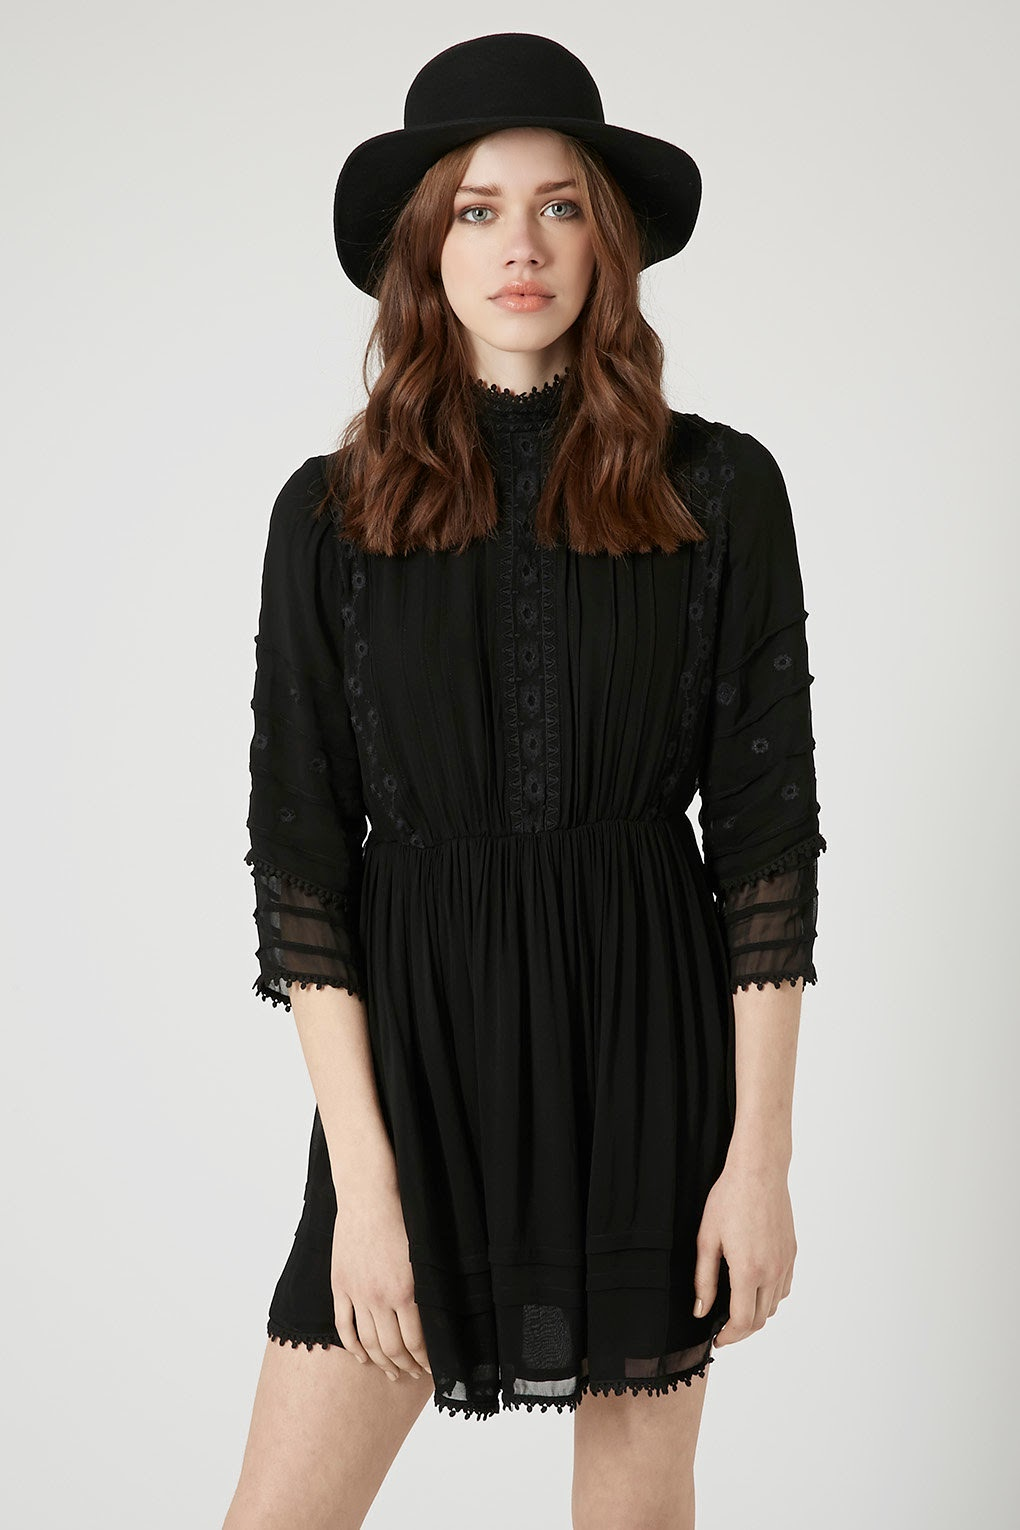 black victoriana dress